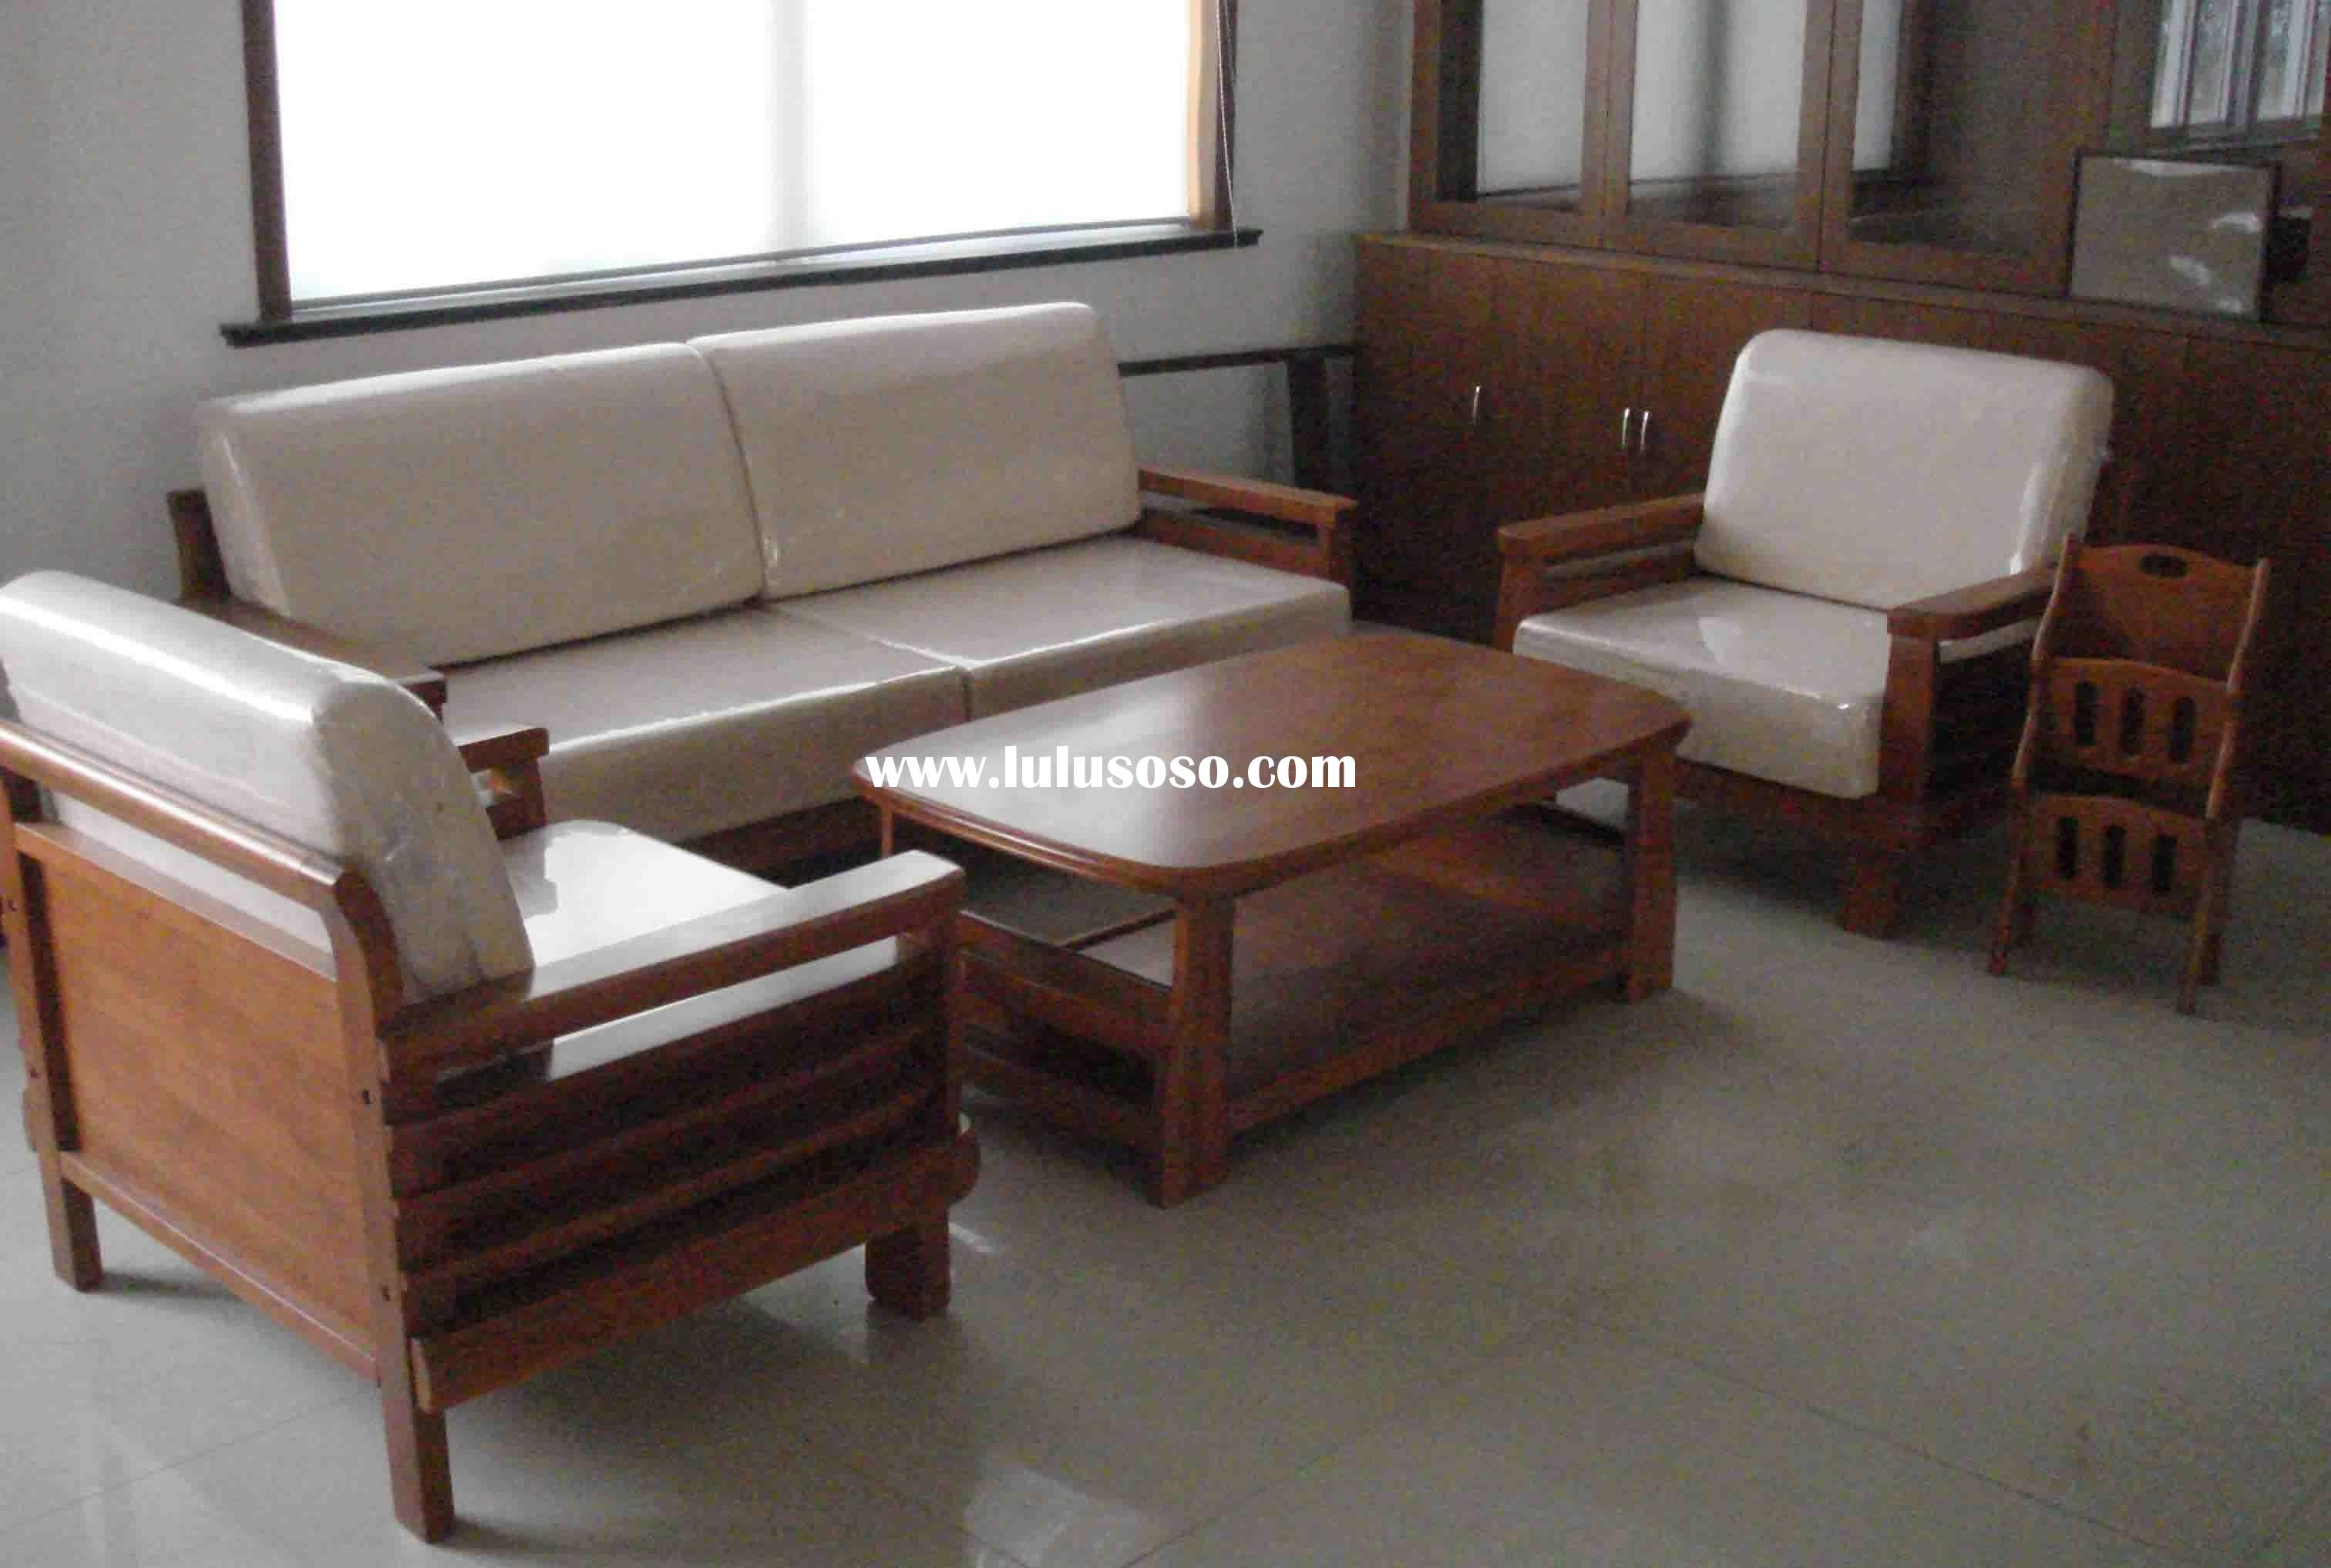 Wooden Sofa Sets Wooden Sofa Sets Manufacturers In Lulusoso Com Page 1